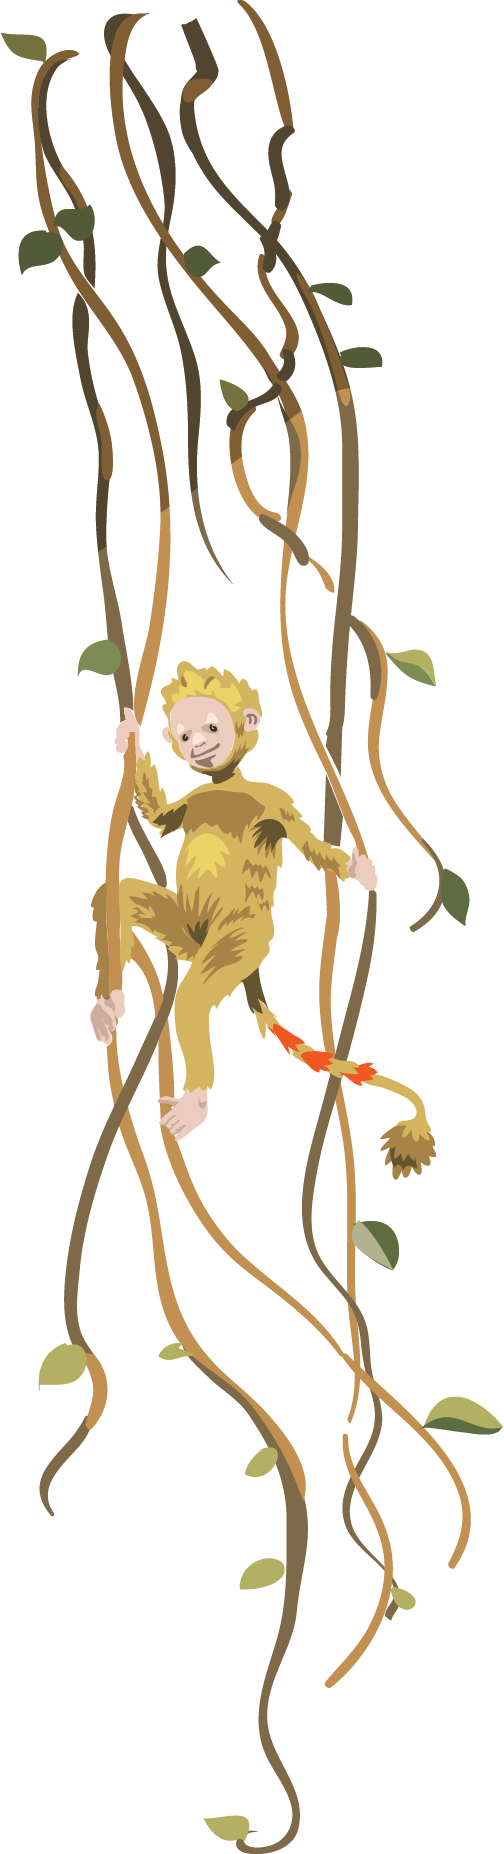 a monkey in the jungle vines